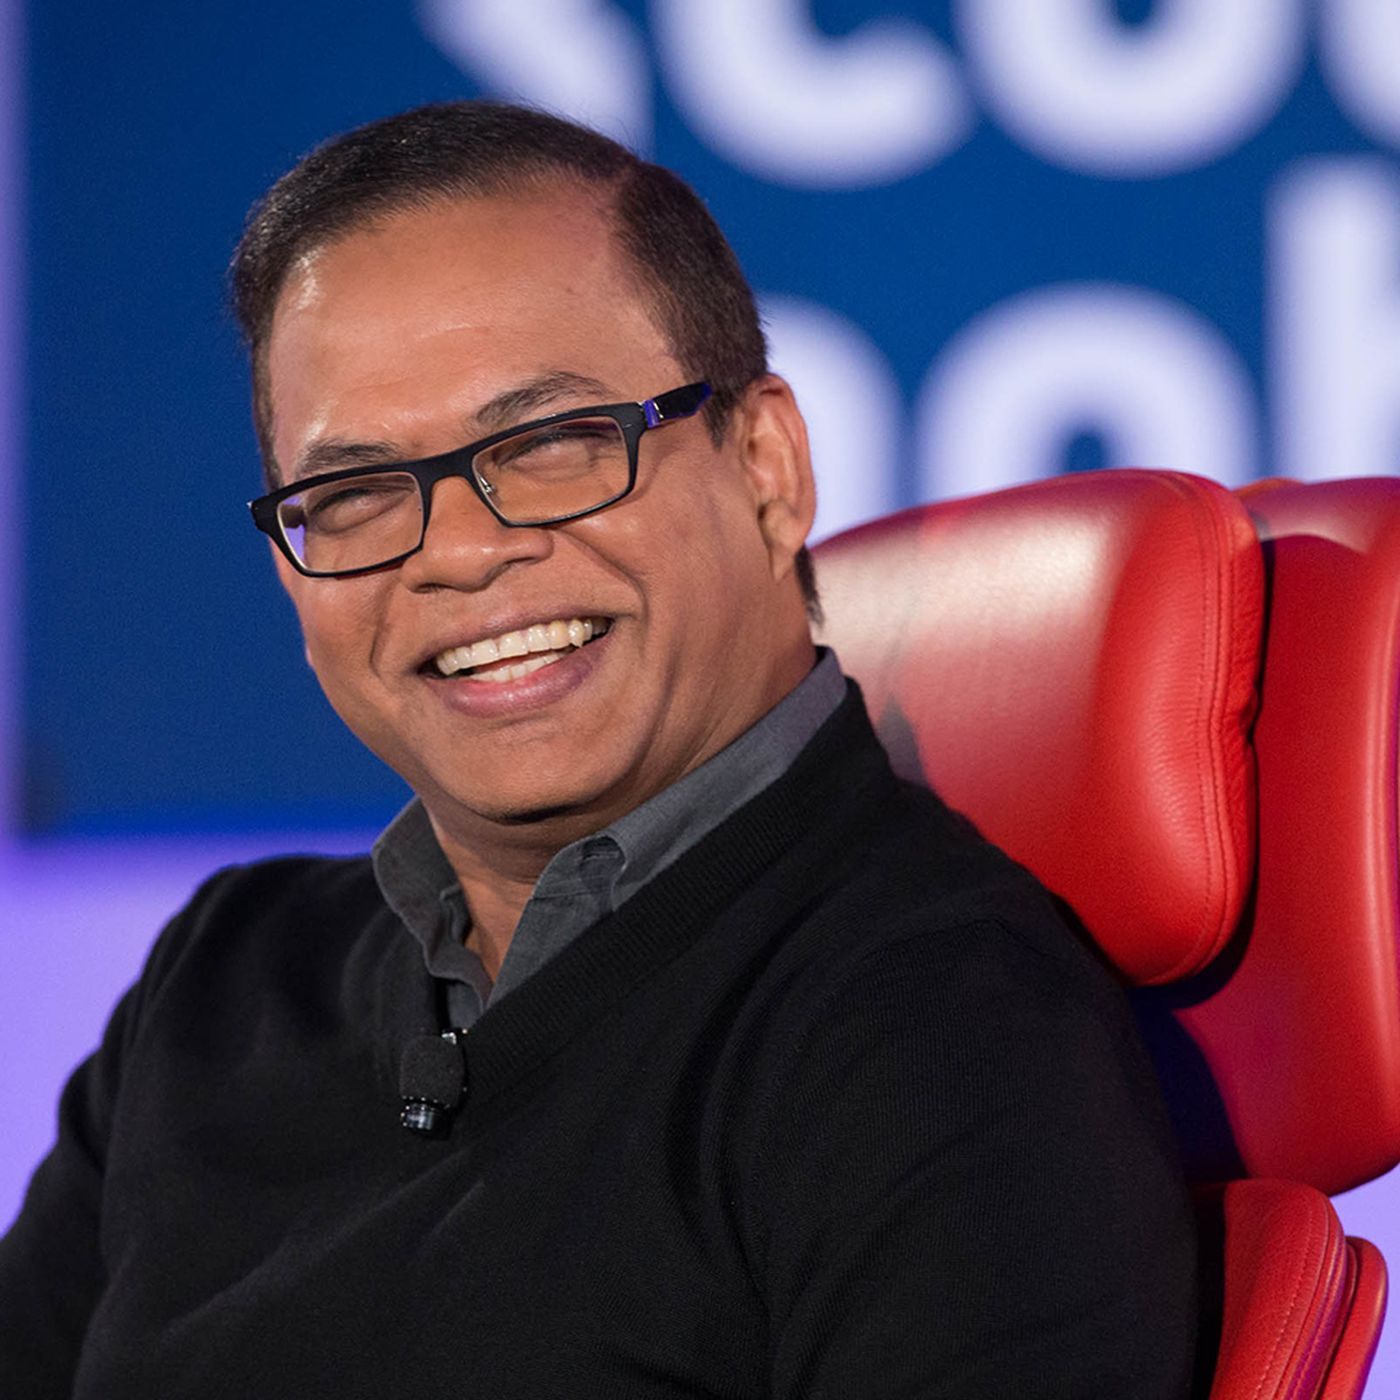 The 52-year old son of father (?) and mother(?) Amit Singhal in 2021 photo. Amit Singhal earned a  million dollar salary - leaving the net worth at  million in 2021